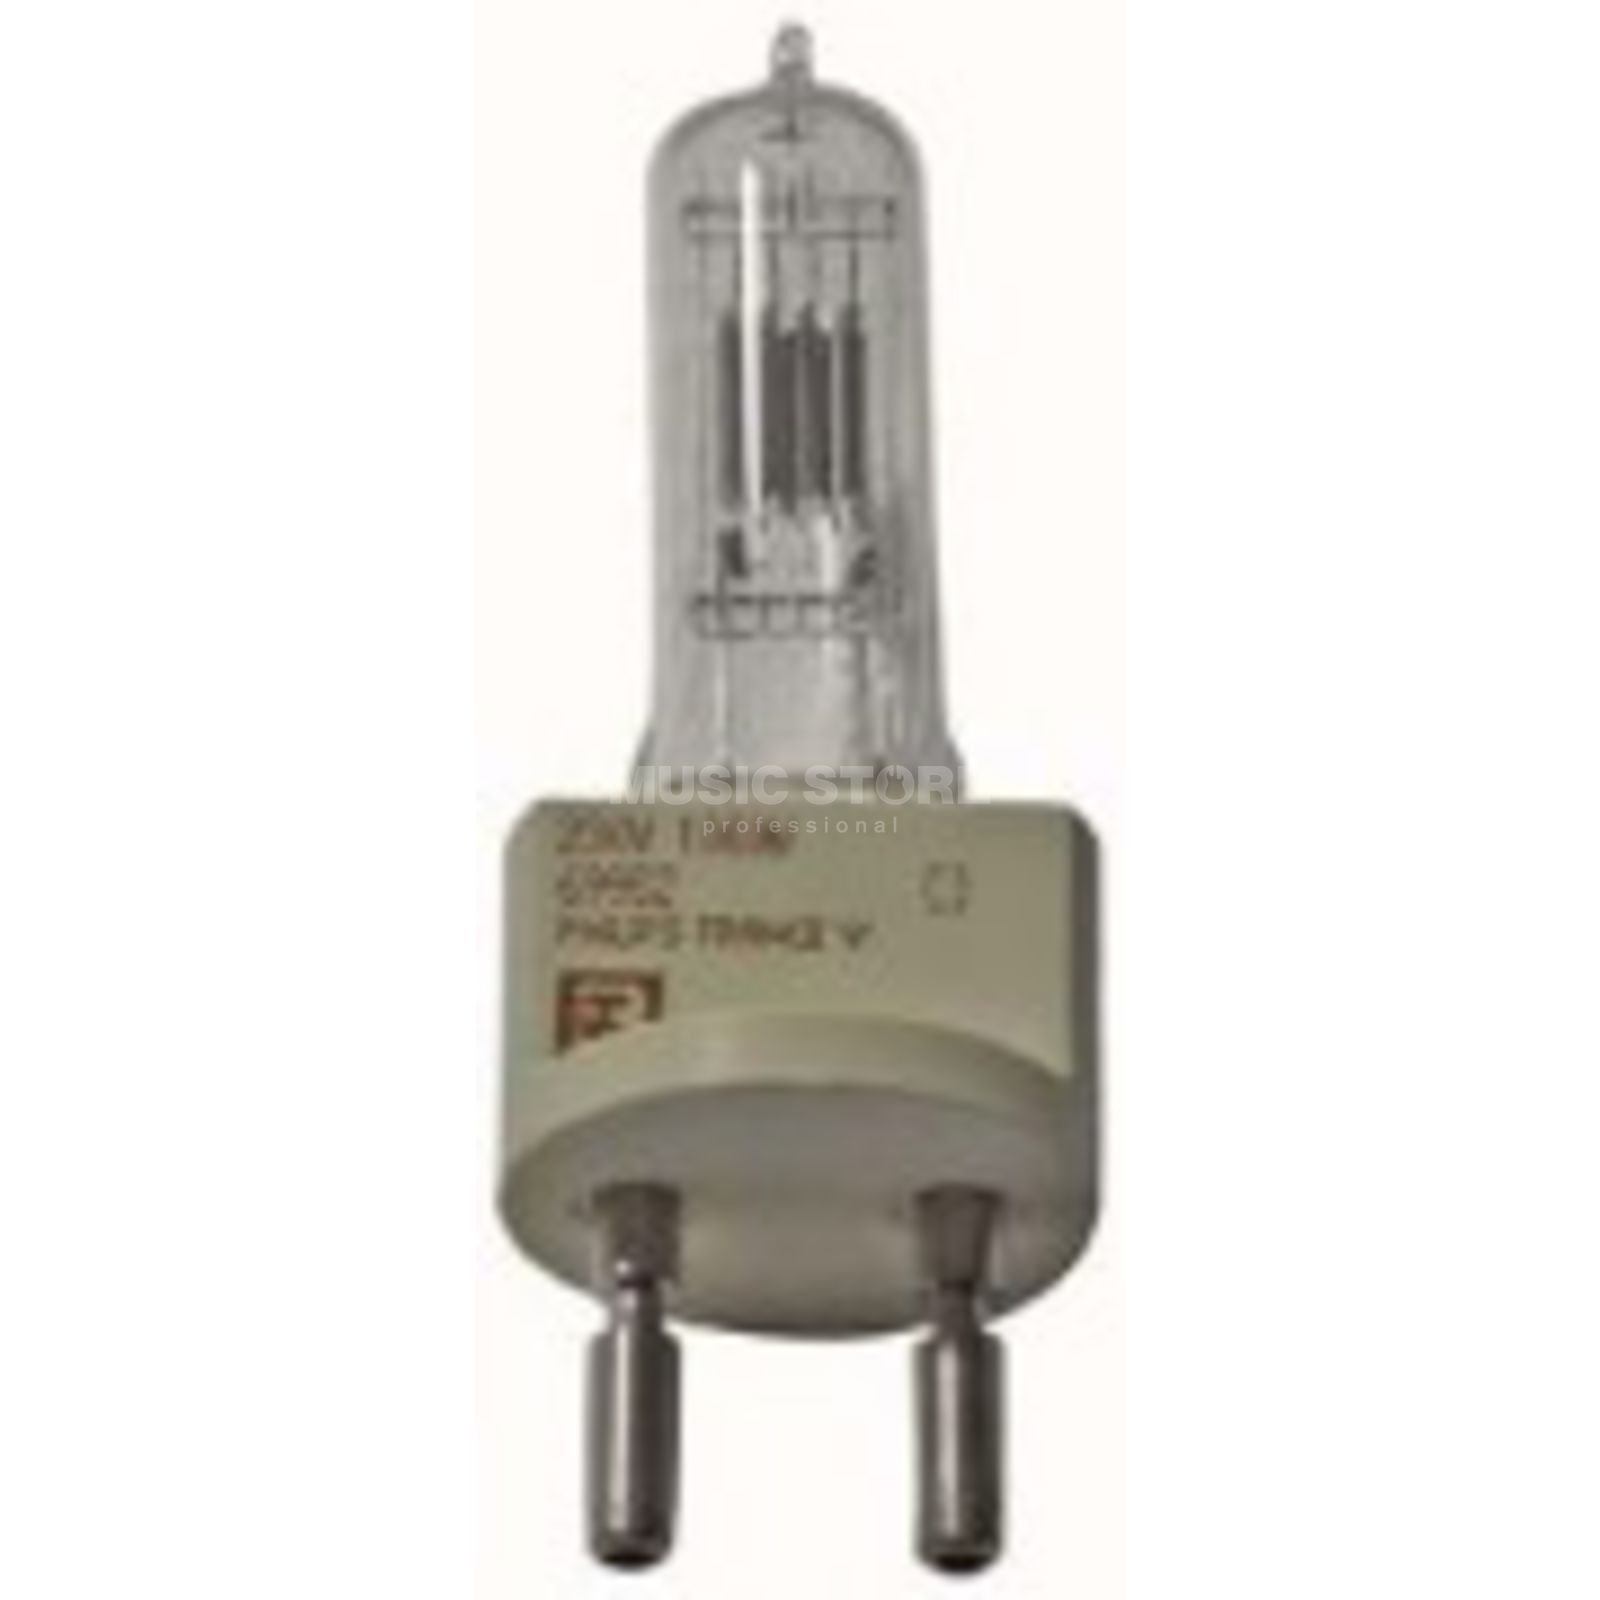 GE Lighting CP92 G 22 2000W Halogen Lamp Produktbild